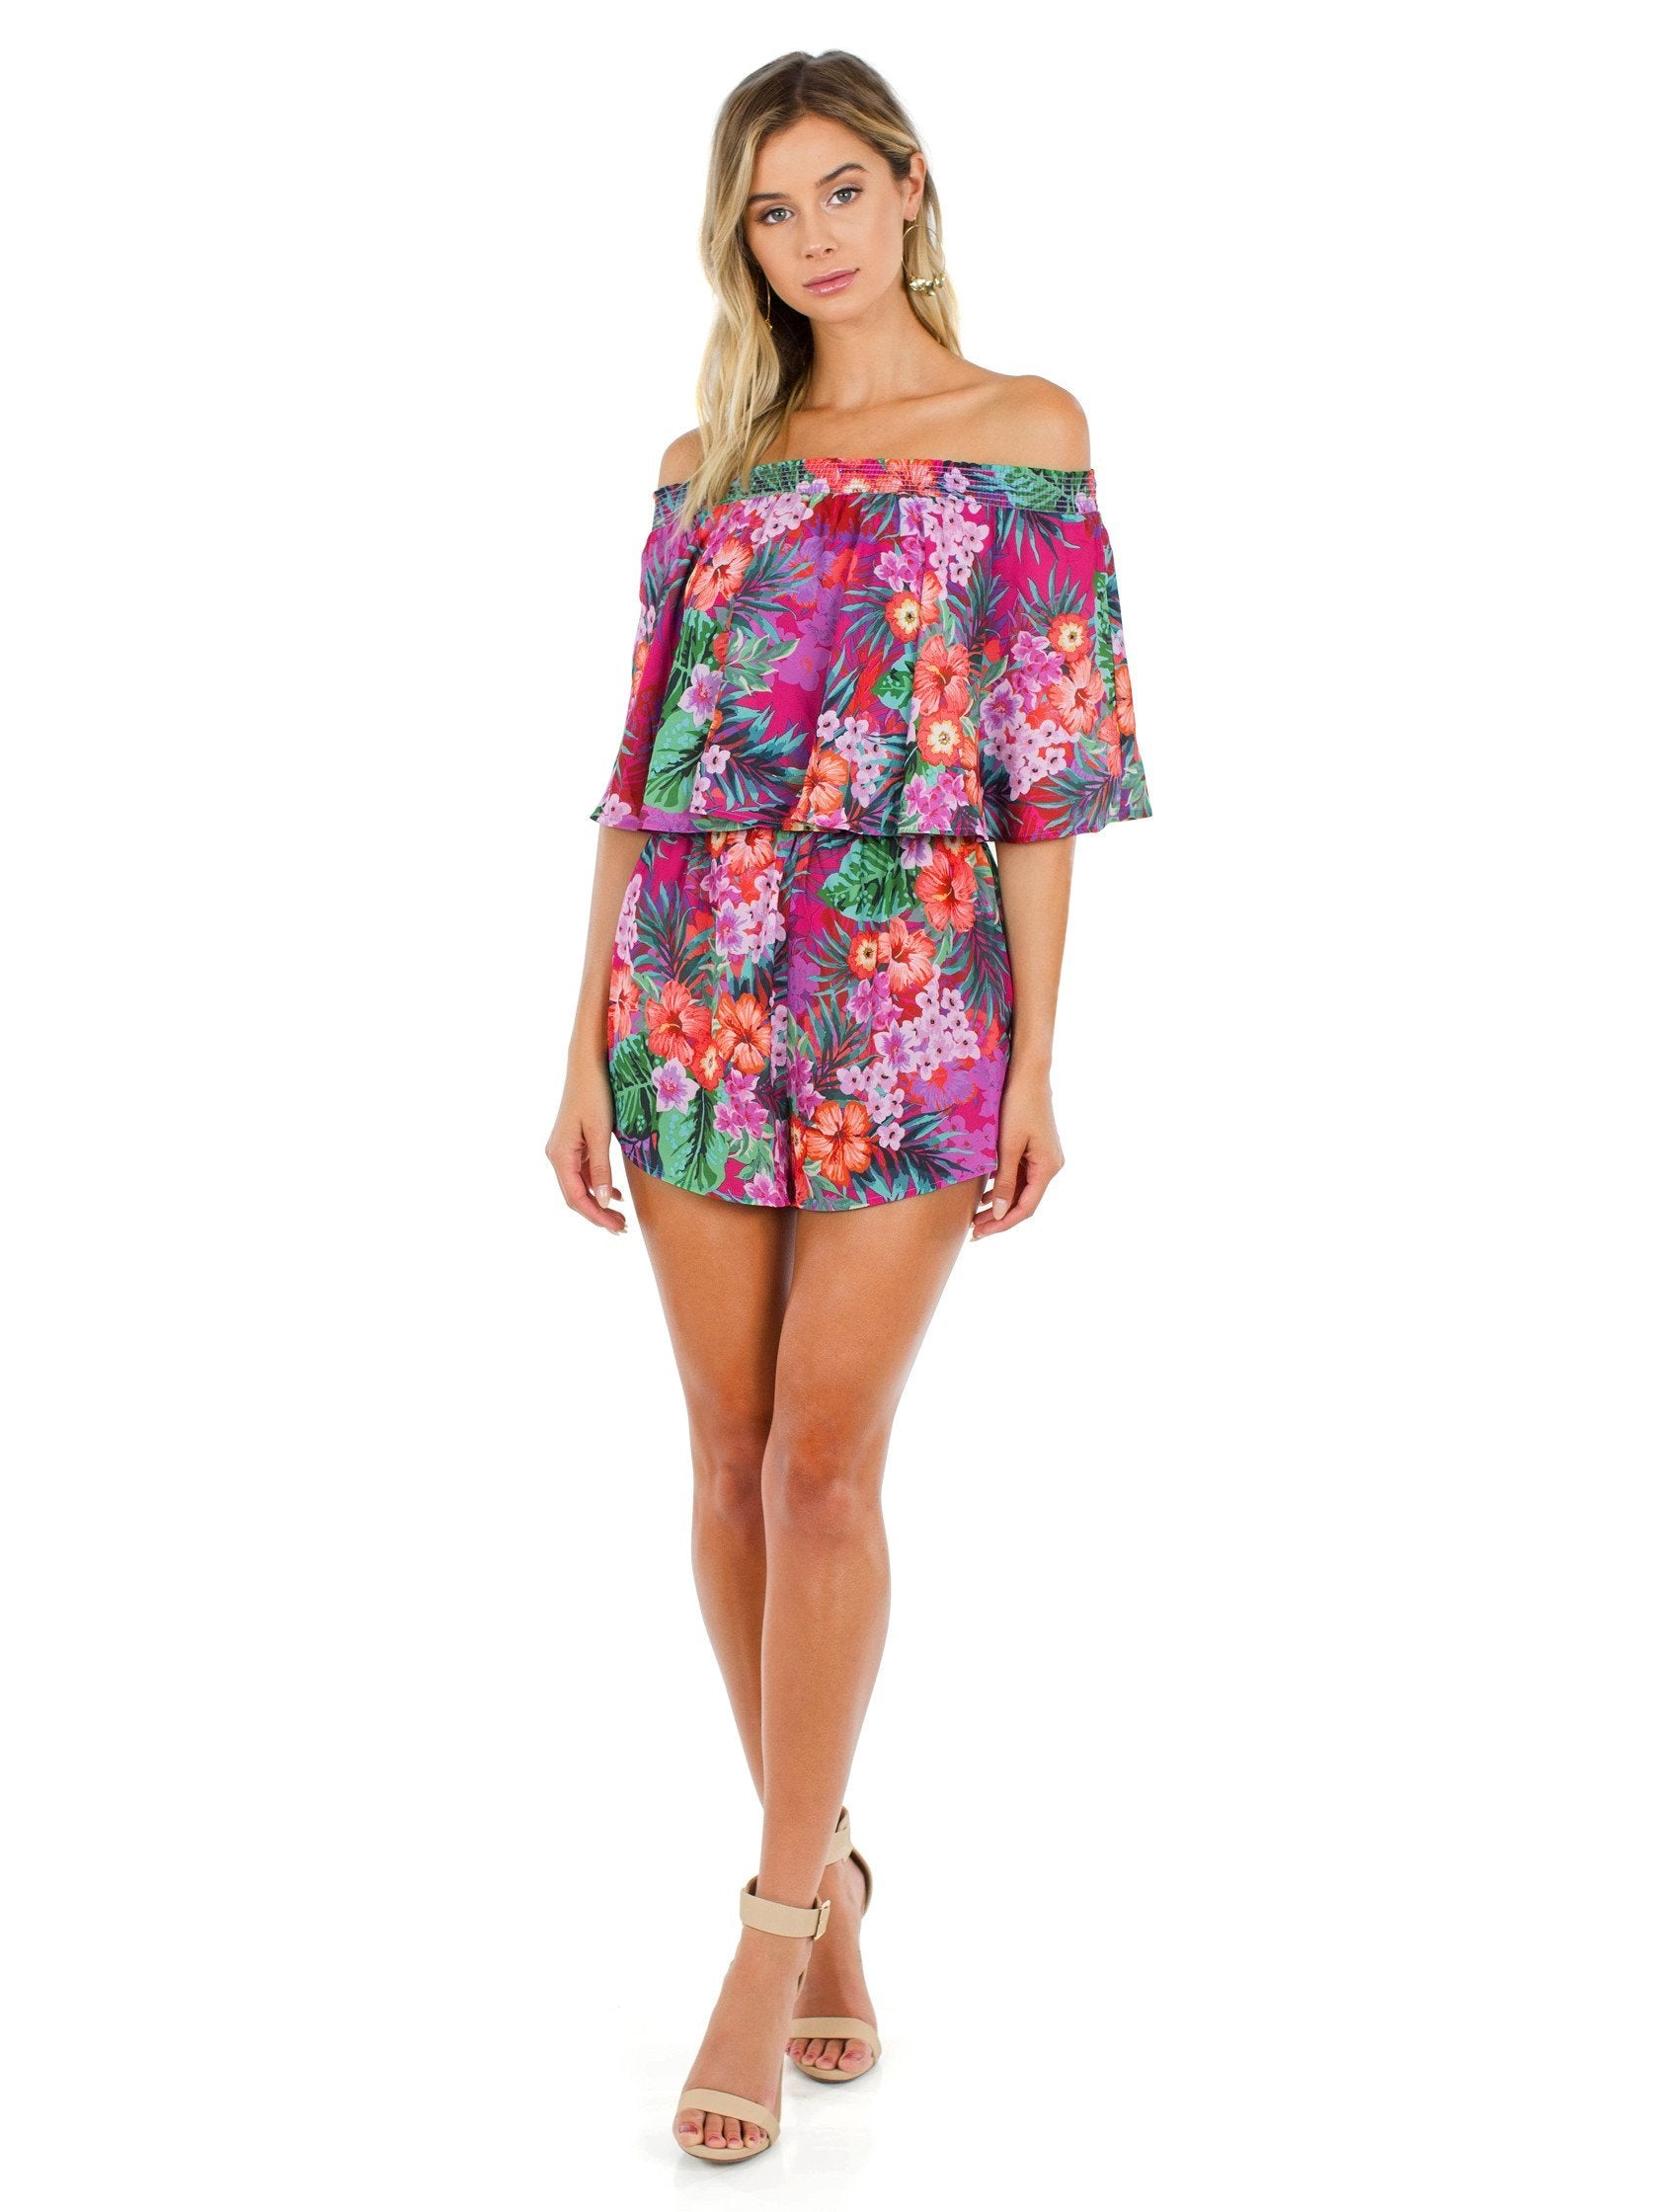 Girl outfit in a romper rental from Show Me Your Mumu called Rosarita Romper